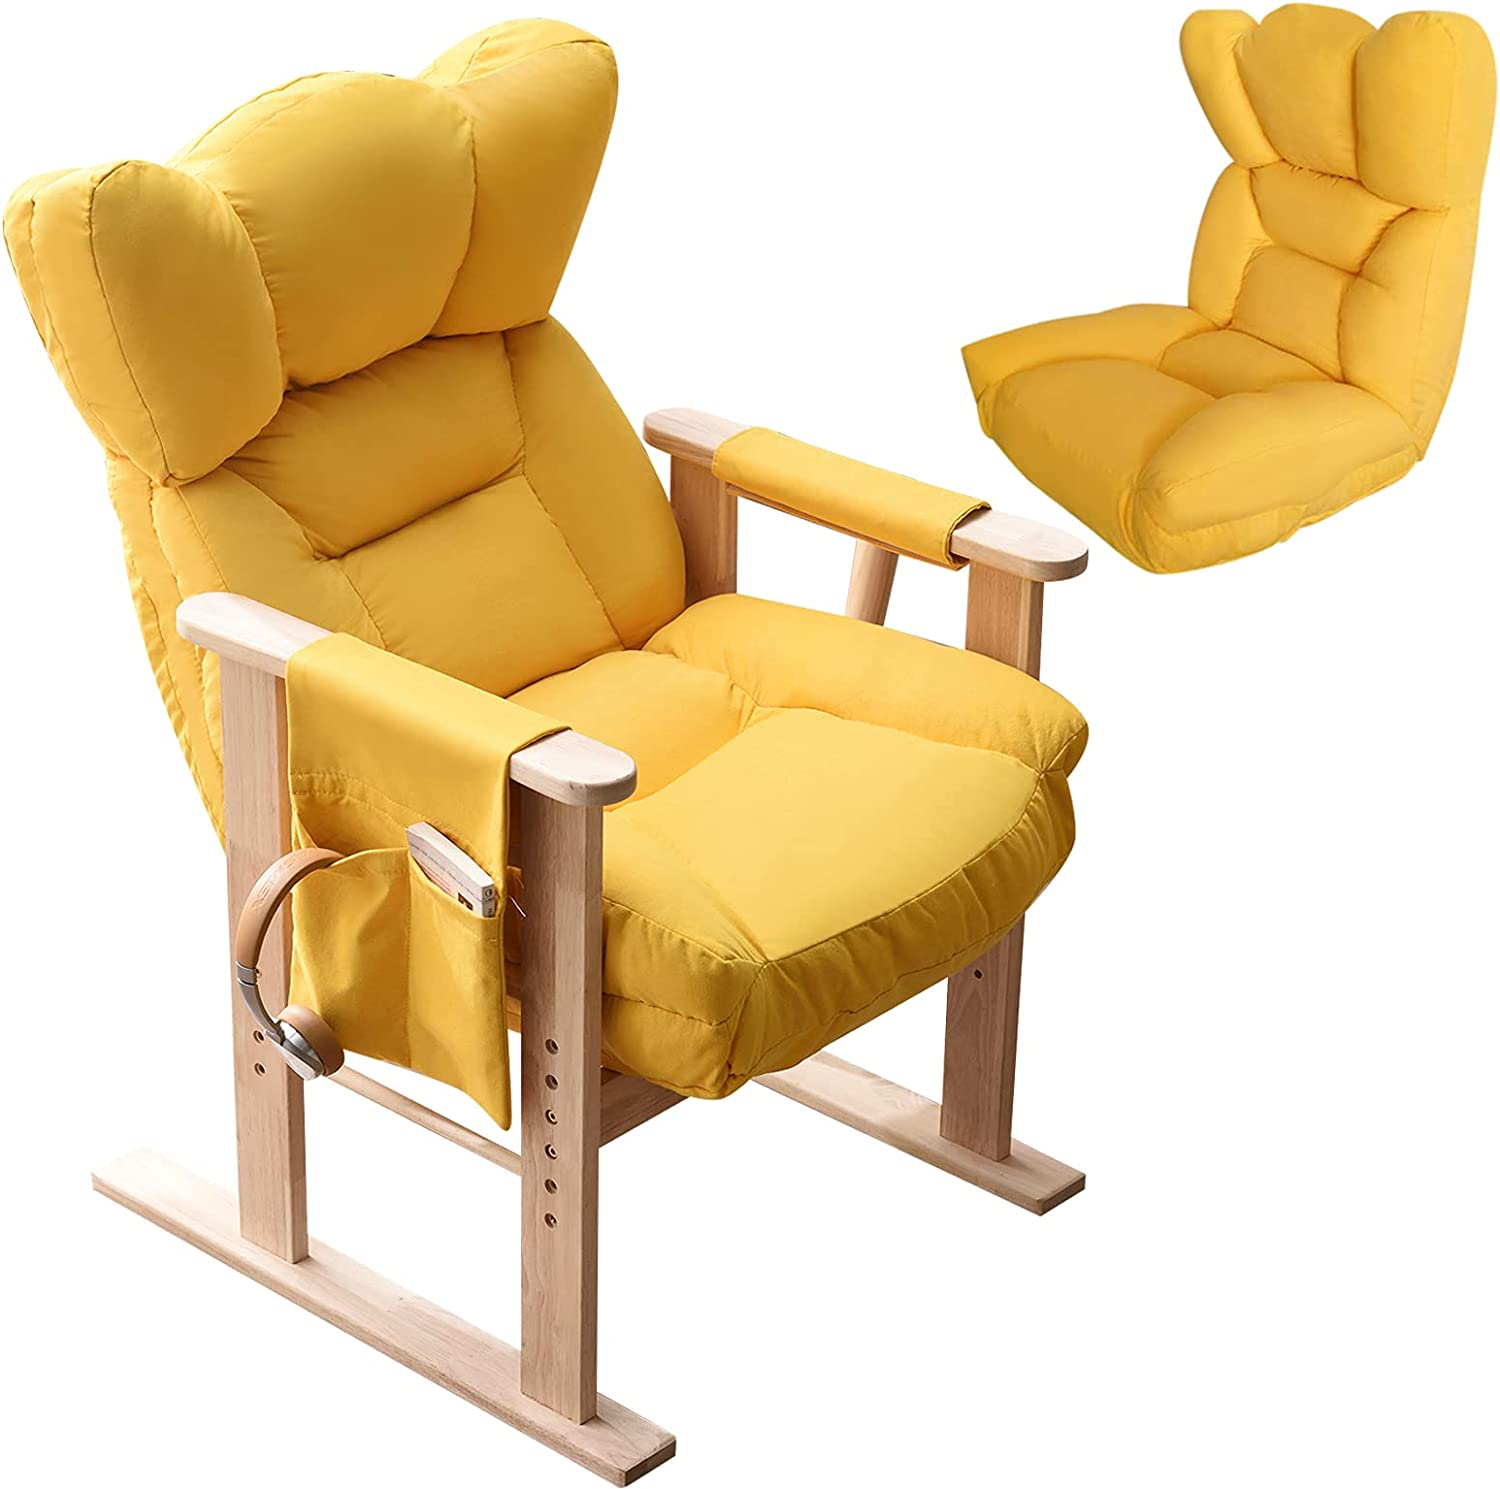 Adjustable Recliner Chair for Living Room, Single Sofa Recliner, Modern Recliner Seat, Club Chair, Home Theater Seating